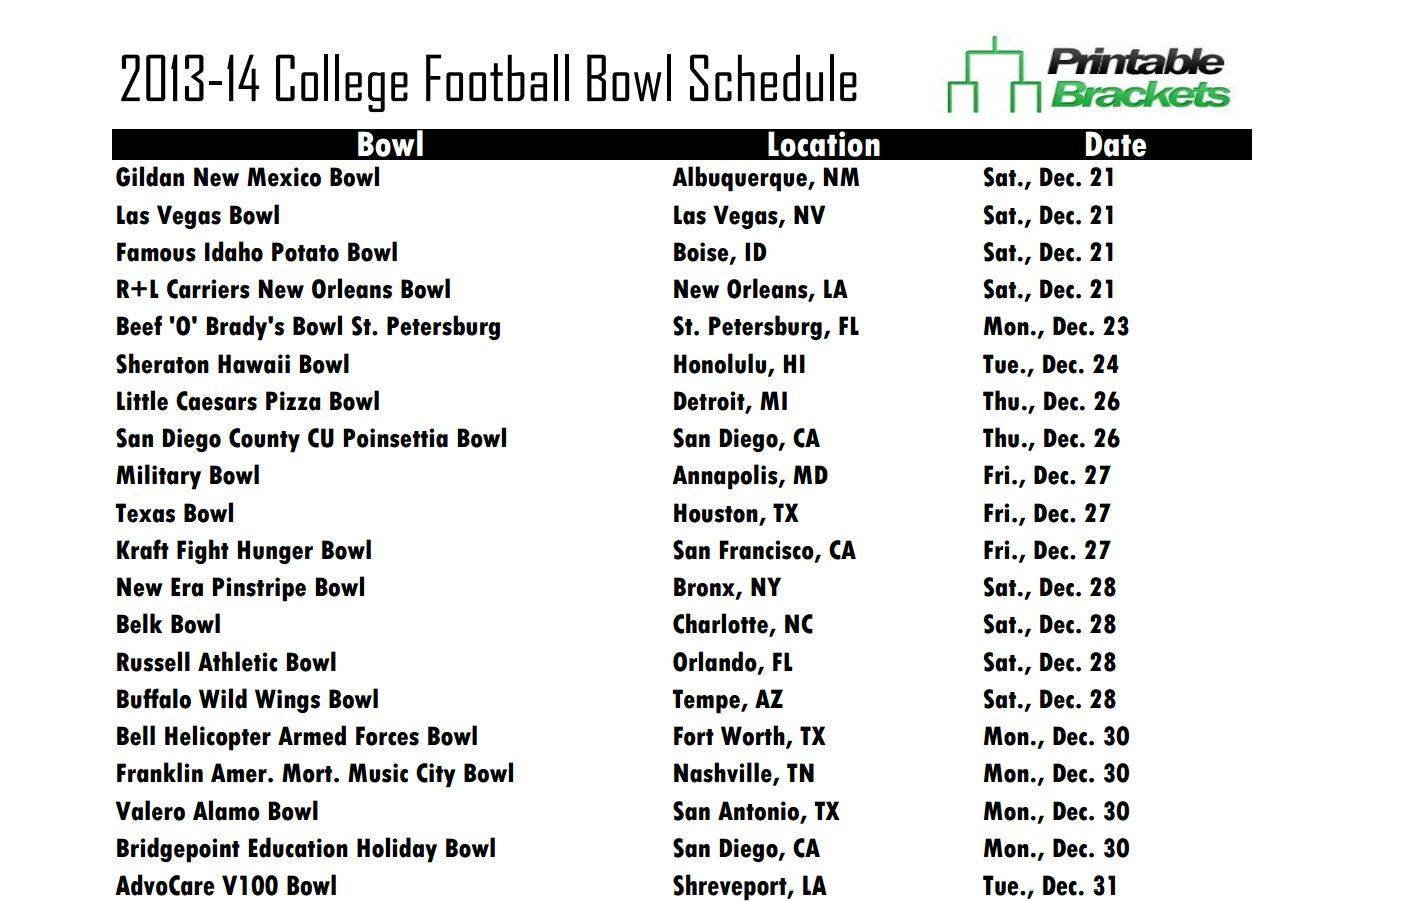 College Football Bowl Schedule | 2013 Bowl Schedule » Printable ...